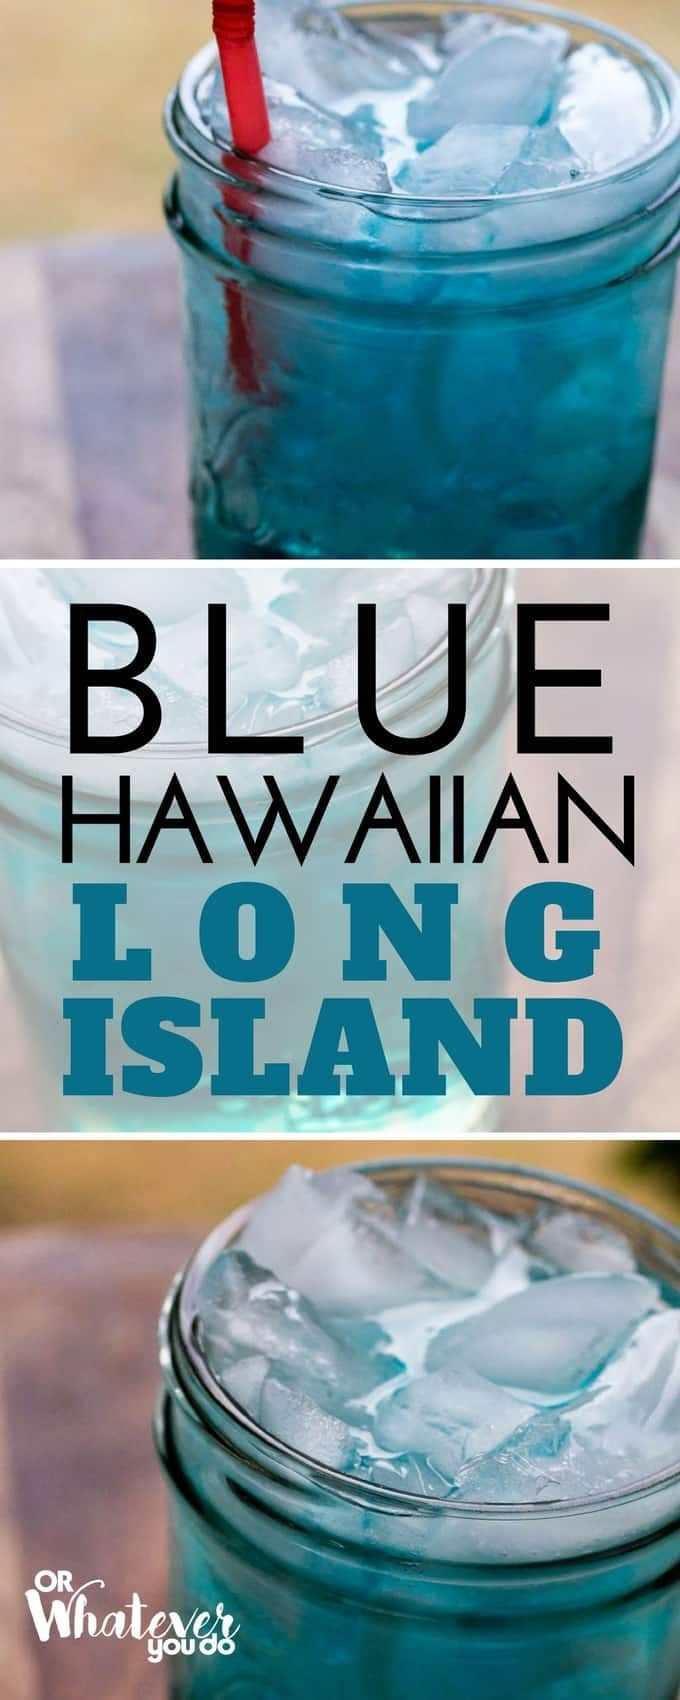 Blue Hawaiian Long Islands are a concoction of alllll the liquor plus blue curacao and some 7up. Not for the faint-hearted, make sure you enjoy this colorful drink in moderation! Blue Hawaiian Long Island You guys know my love for blue drinks and fun cocktails is pretty intense. Most recently I posted this awesome Baby...Read More »